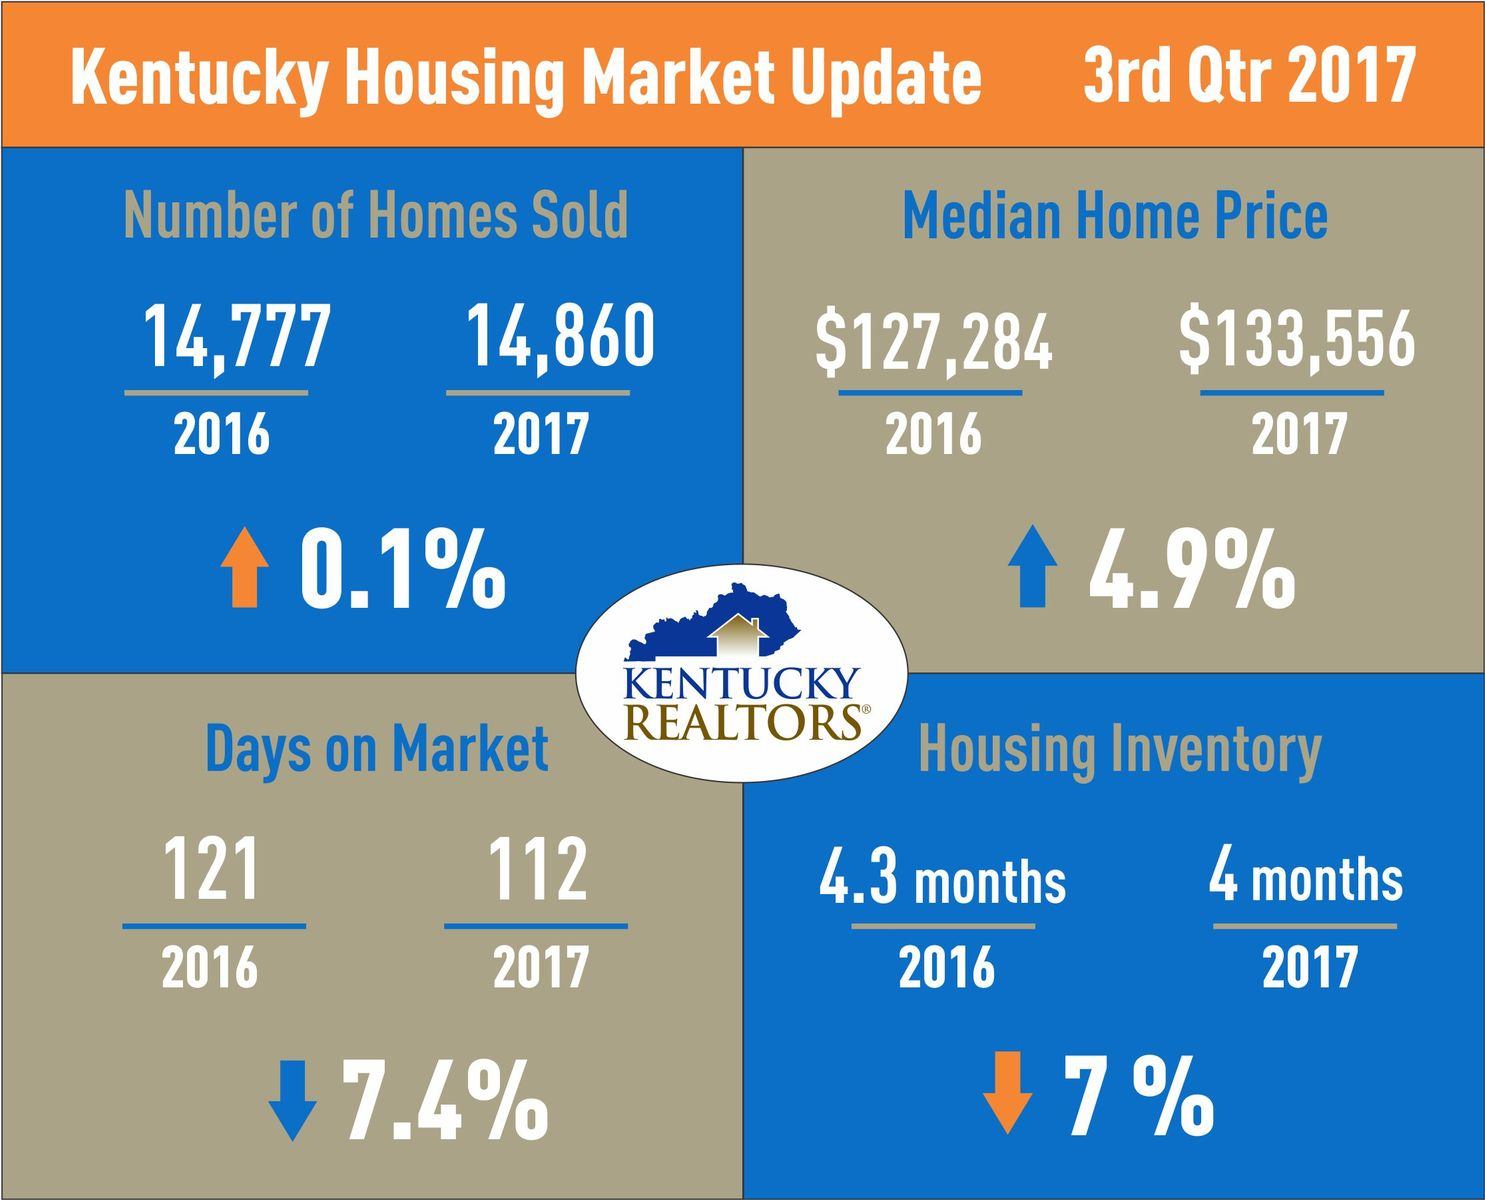 Kentucky Housing Market Update September 2017